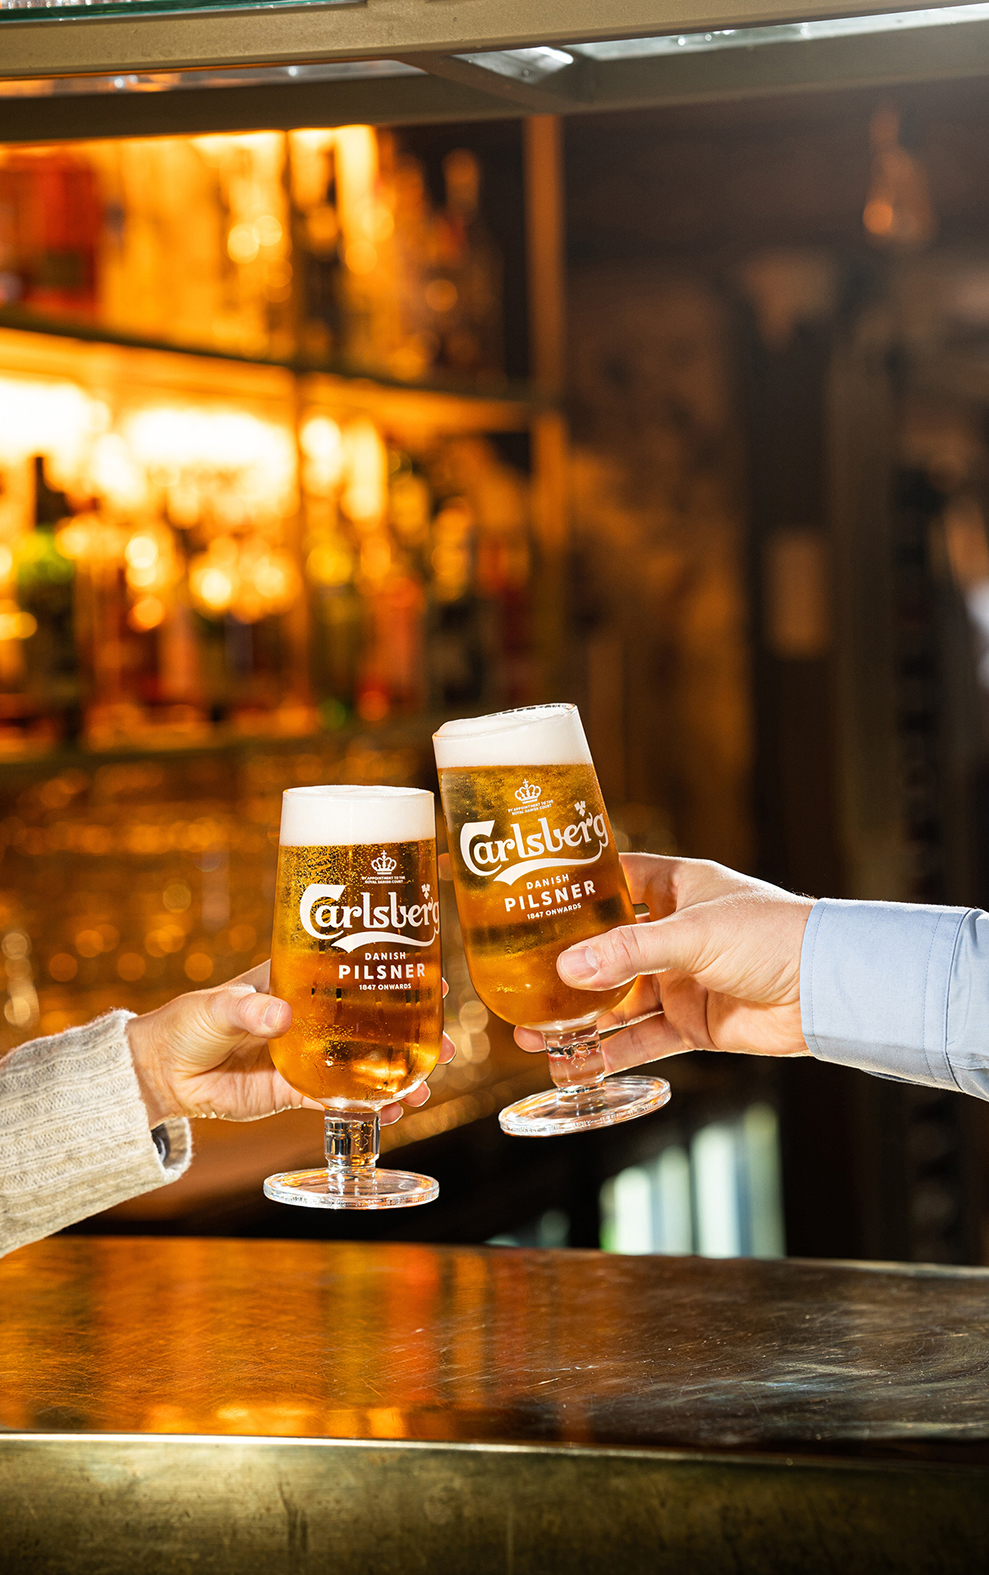 Cheers Carlsberg – Complementary Pints in a random act of kindness